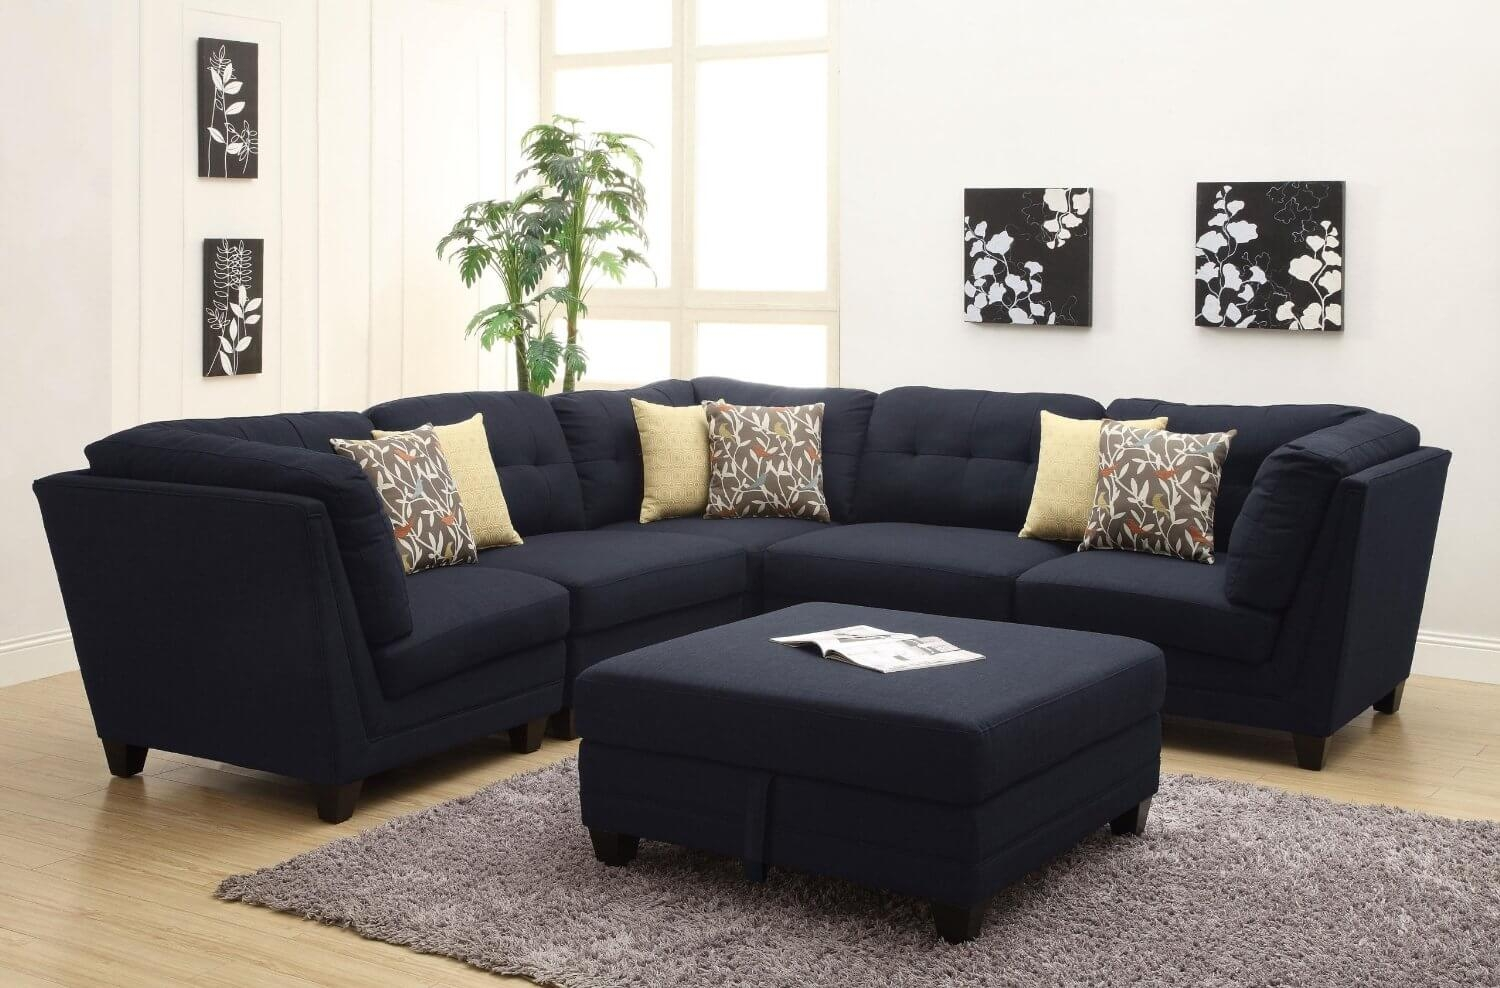 Contemporary Black Leather Sectional Sofa Left Side Chaise Within Contemporary Black Leather Sectional Sofa Left Side Chaise (#9 of 12)